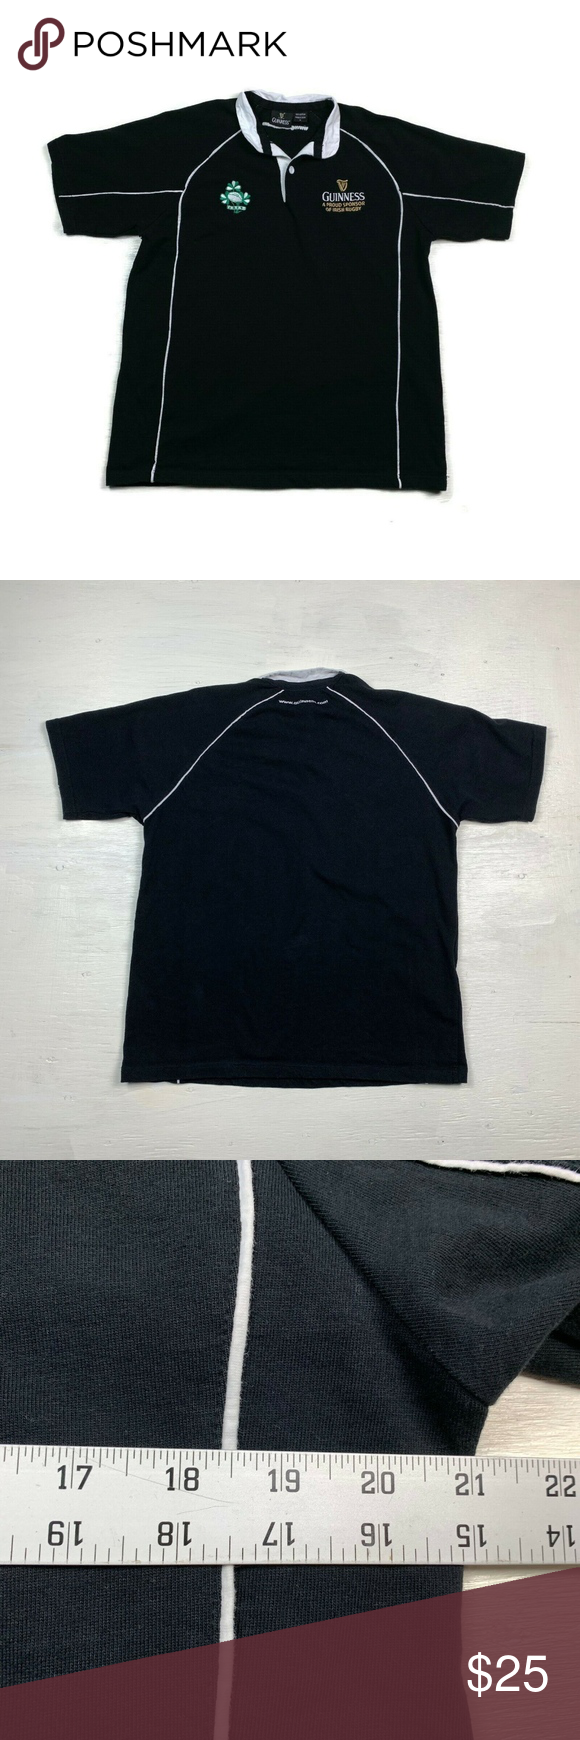 Guinness Beer Polo Shirt Ireland Black White Guinness Beer Polo Shirt Ireland  Men's Size Medium Gently used with, No stains, holes, or piling. Heavier fabric Please see pictures for measurements (Compare w/ Your Favorite Garments For Best Fit) Black White Short Sleeve 100% Cotton   (81J Guinness 0711913) Guinness Shirts Polos